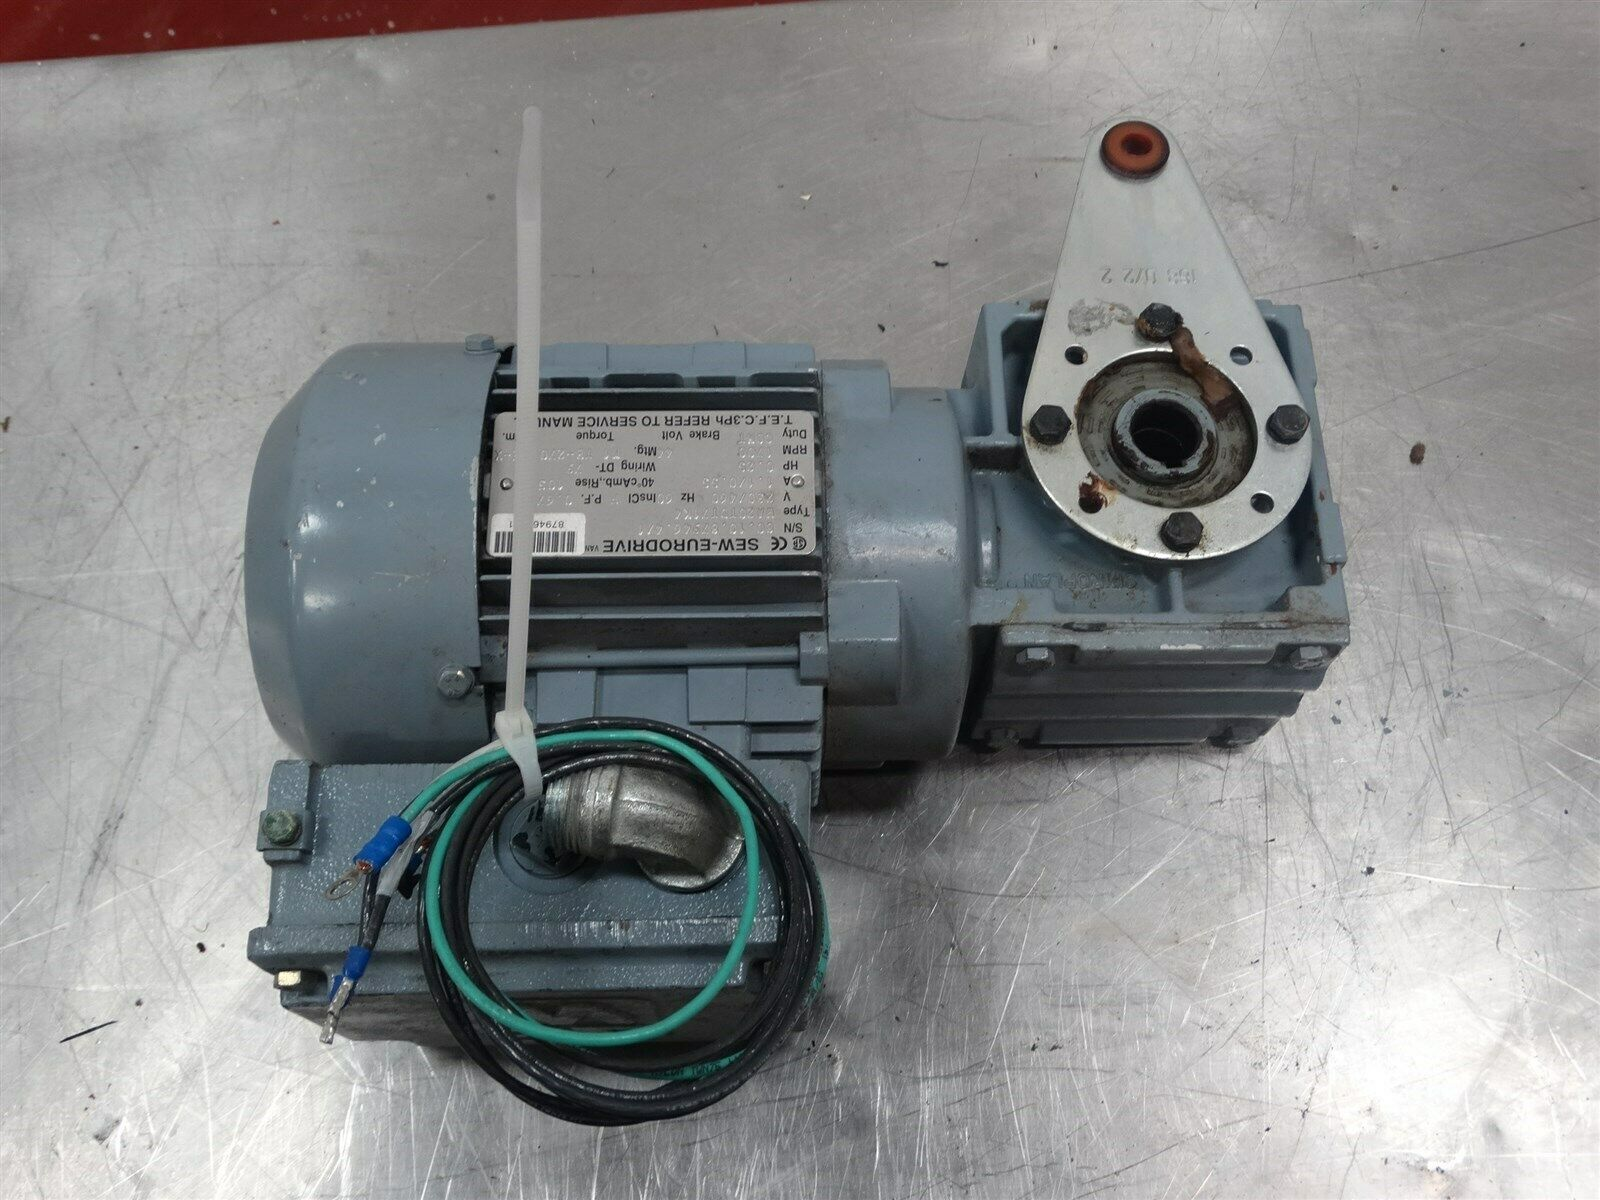 Sew Eurodrive Motor Wa20tdt71k4 025hp 230 460v 11 055a 1700rpm Wiring 3ph 60hz 1 Of 8only Available